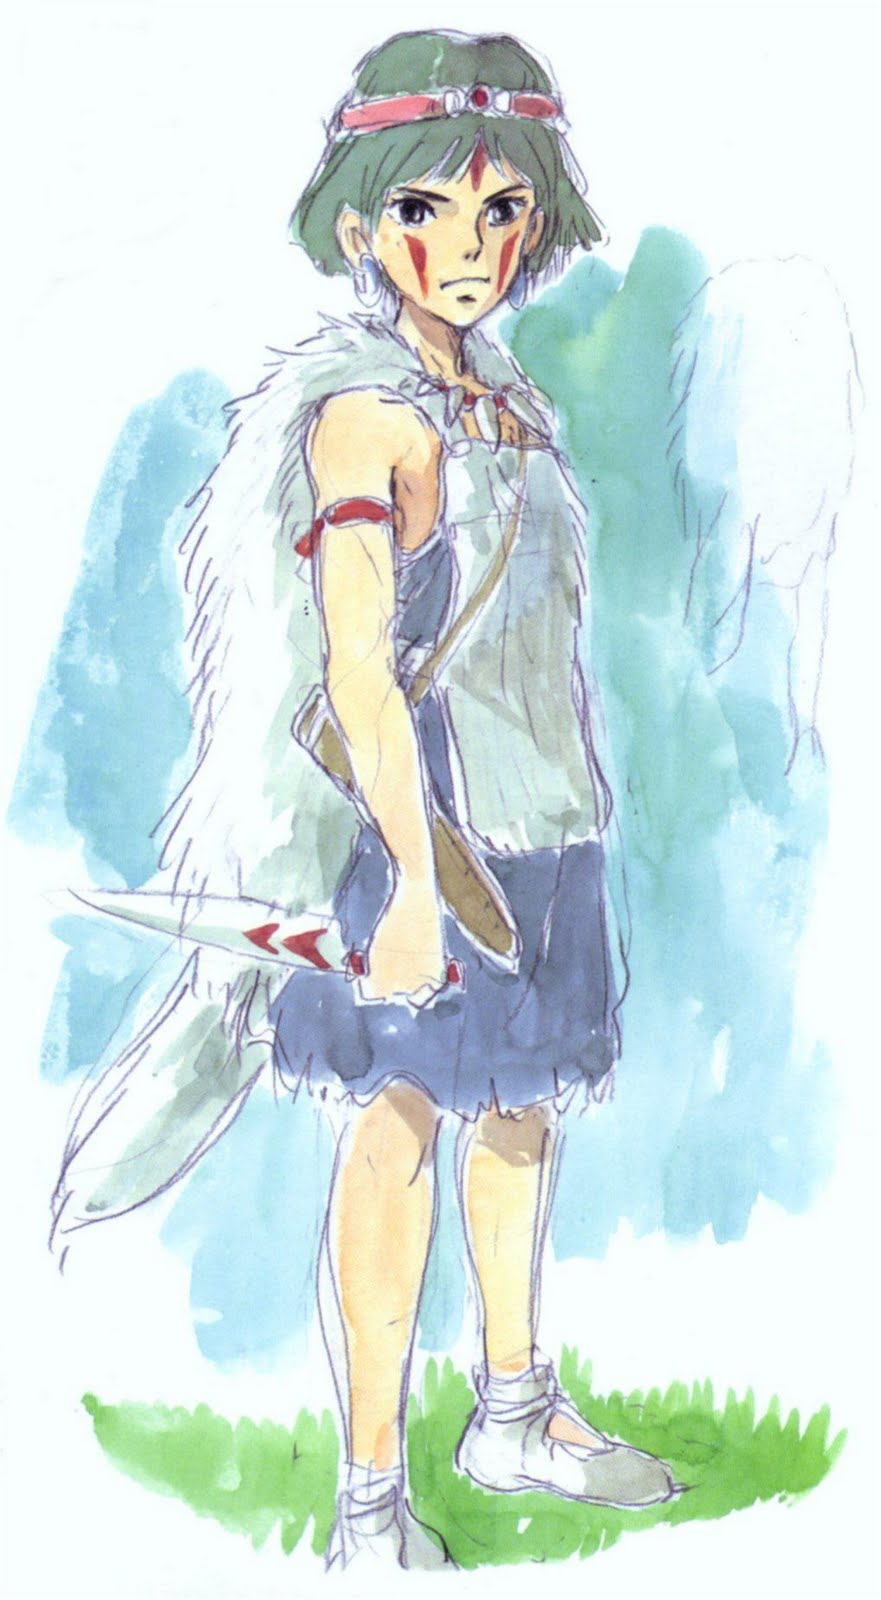 Princess Mononoke Part 1